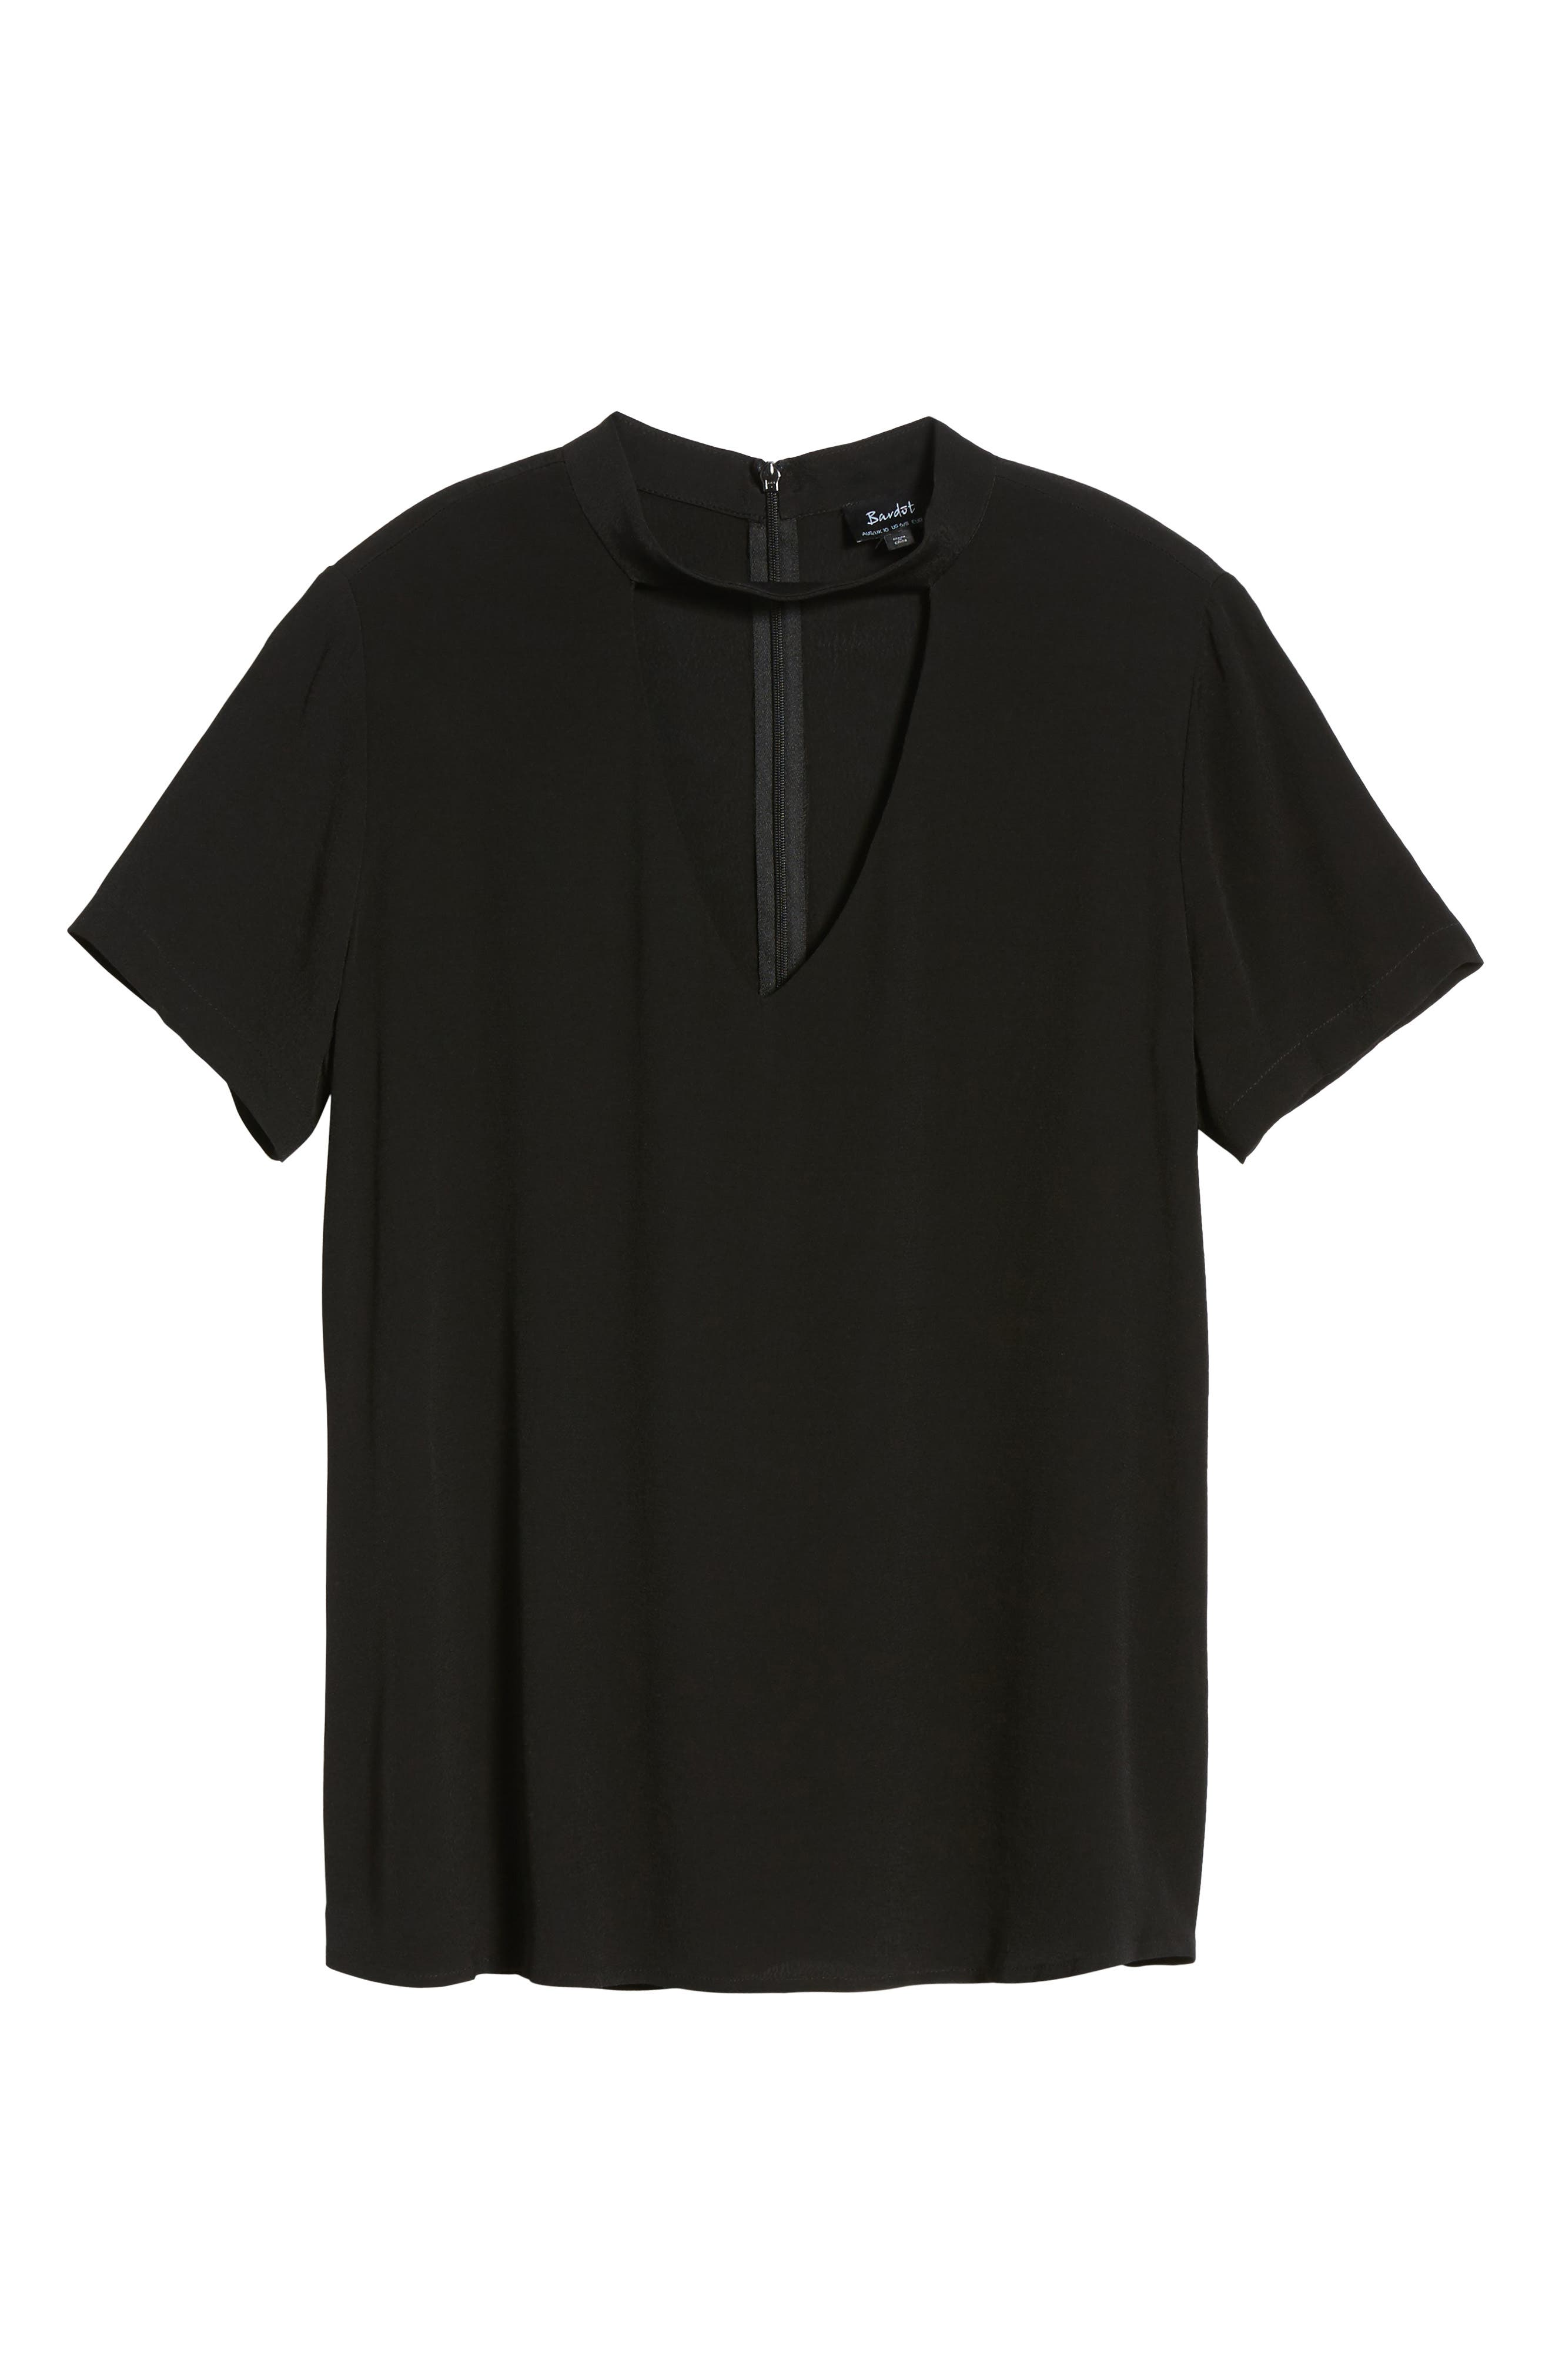 Band Neck Top,                             Alternate thumbnail 6, color,                             001